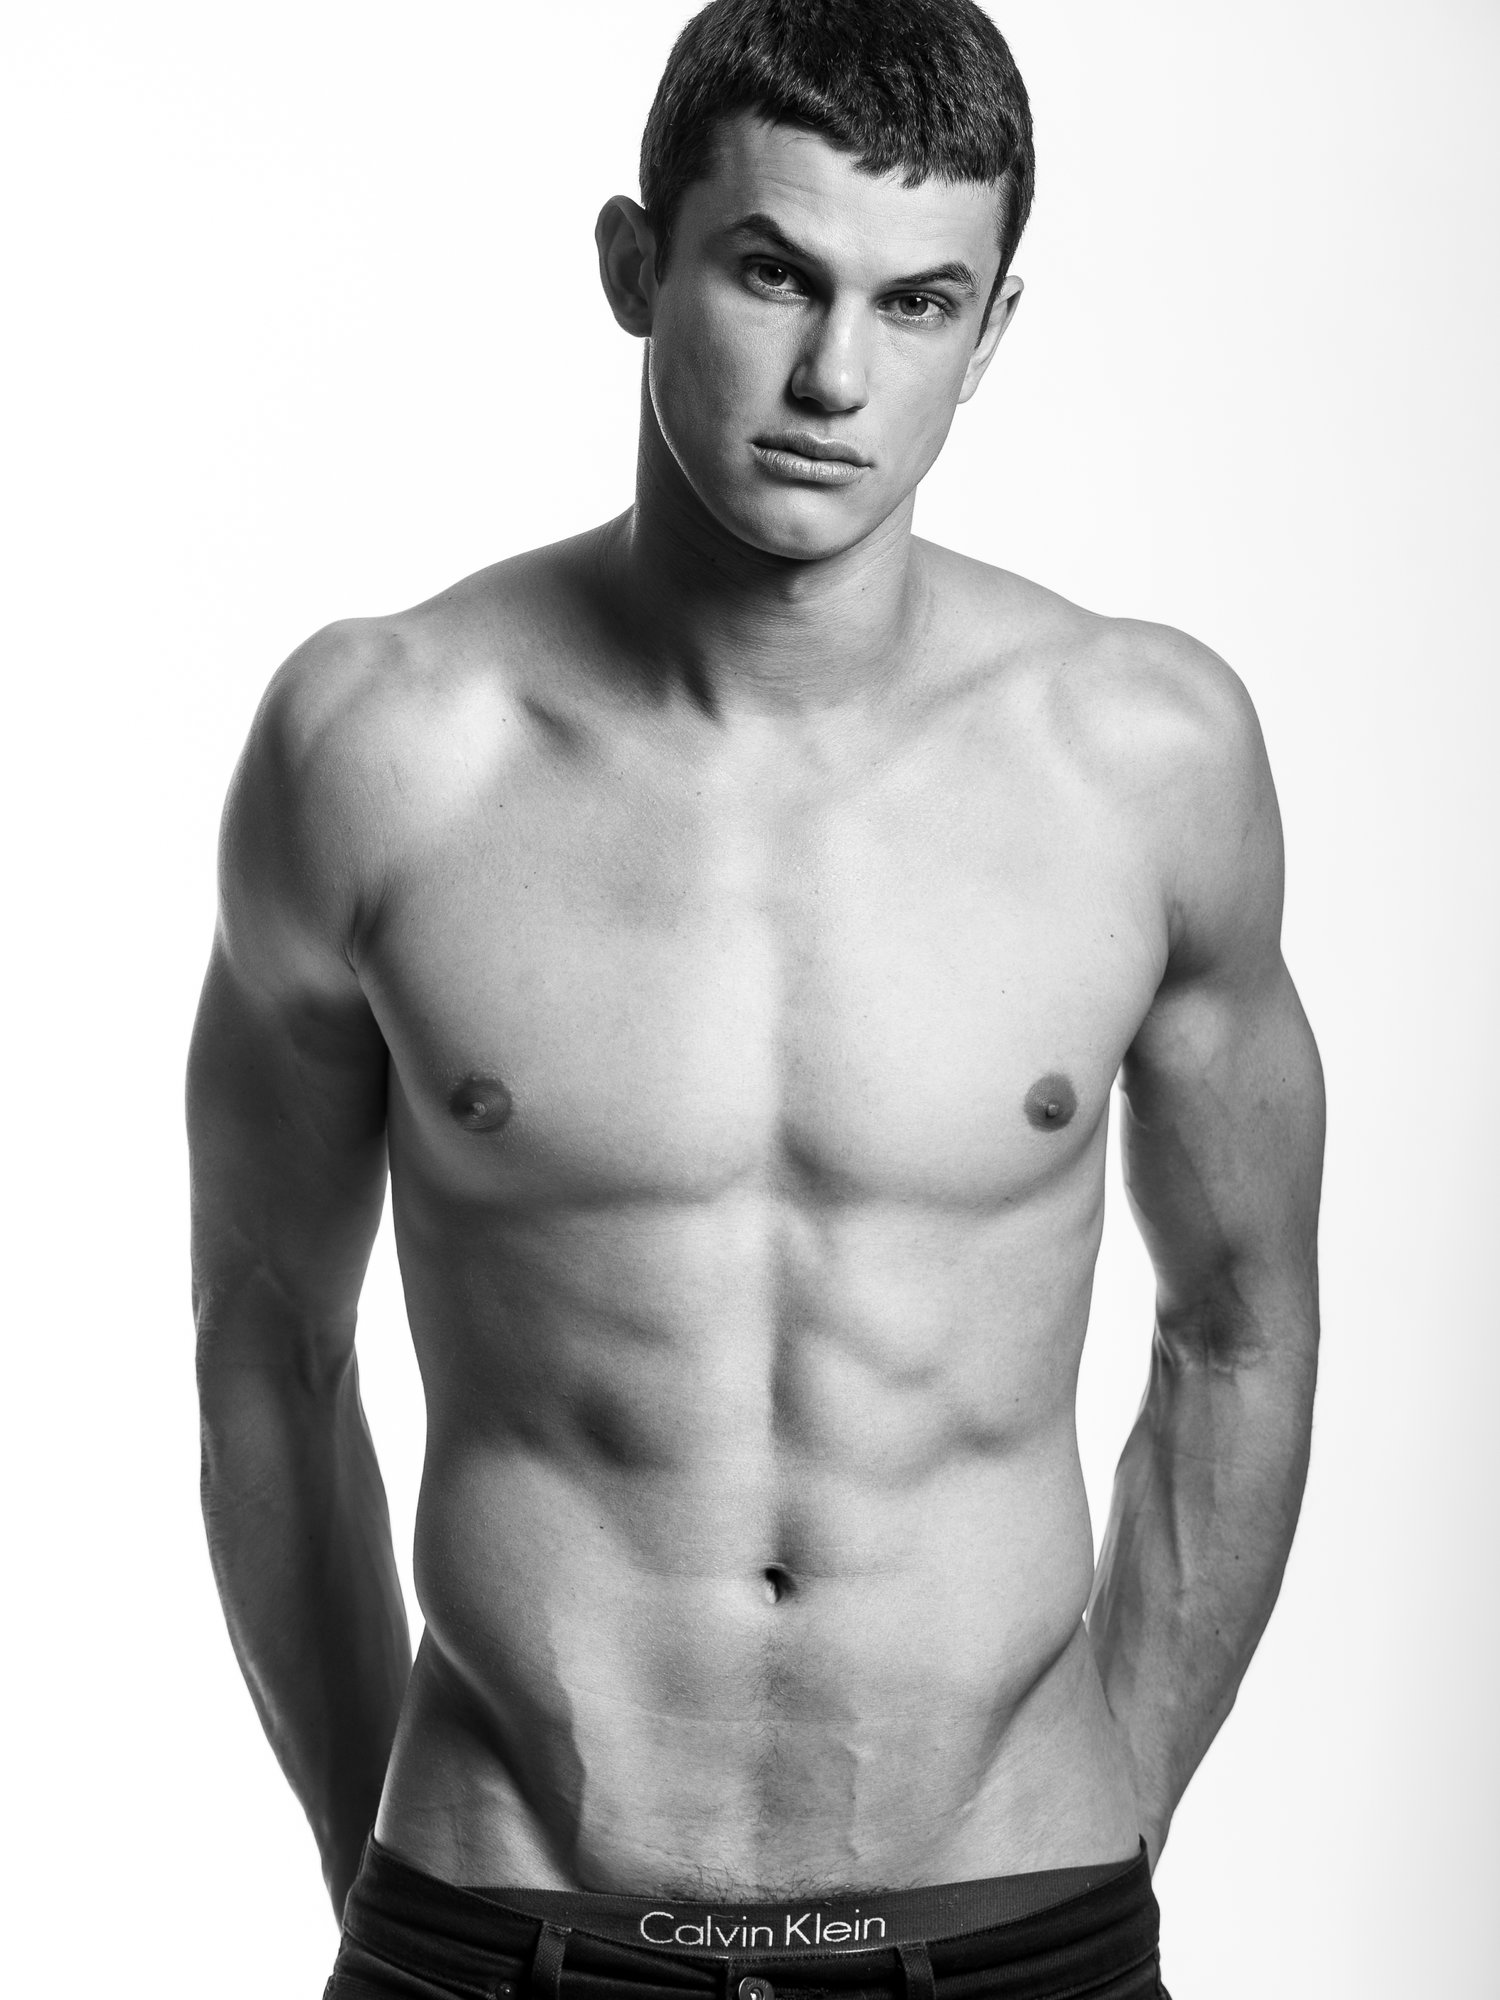 Adon Exclusive: Model Justin Halley By Adrian Richard